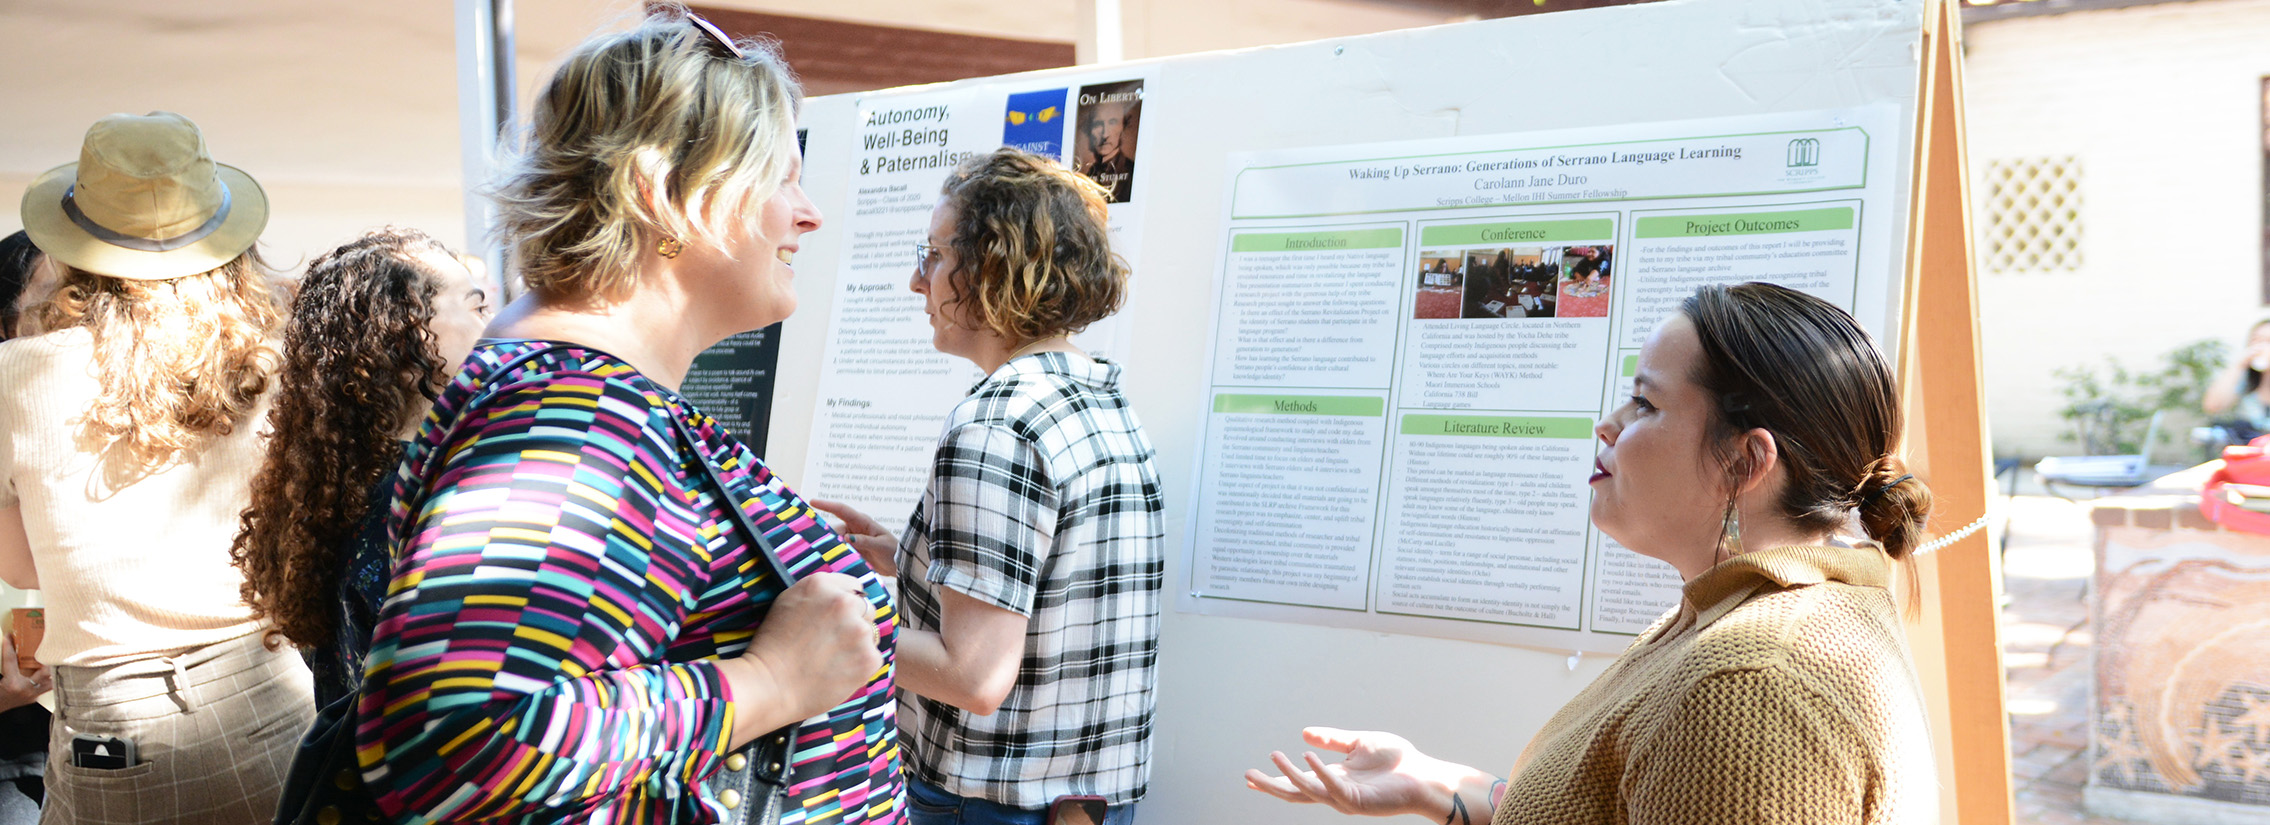 A woman with brown hair in a ponytail talking to a smiling blond woman outside in front of a research poster.